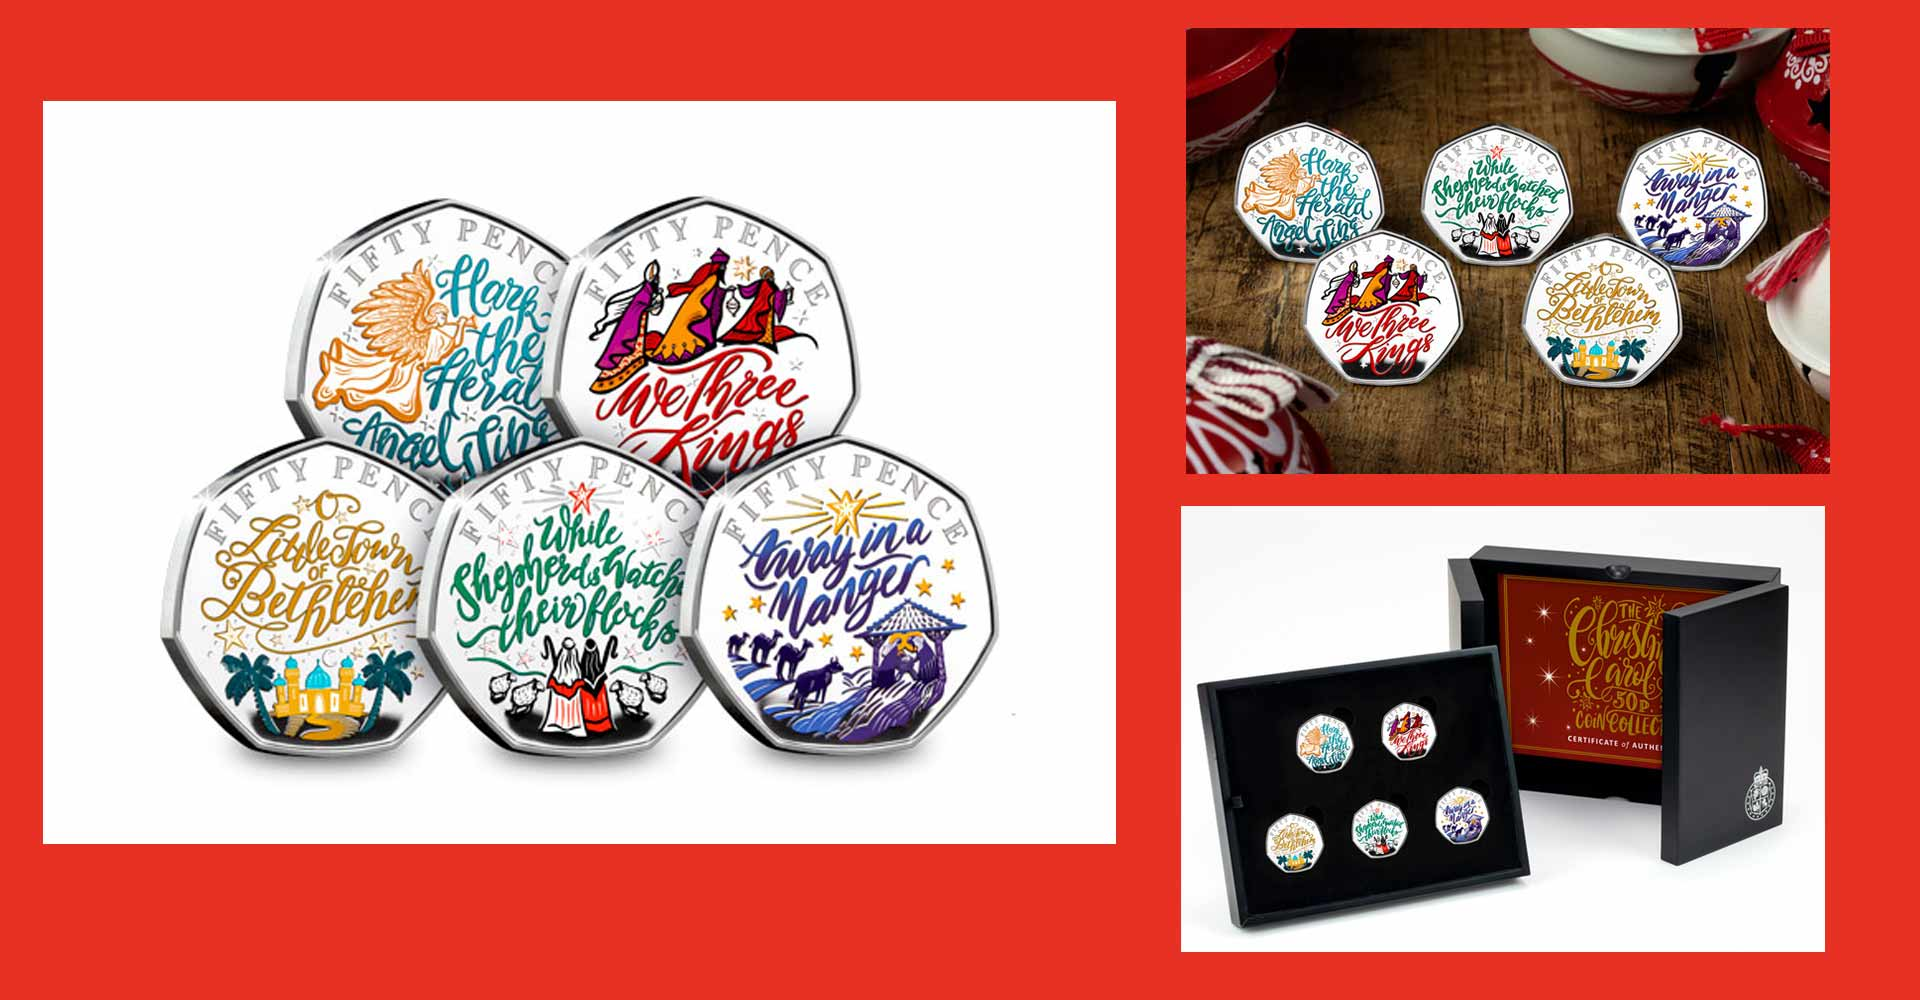 Jo Goodberry – Chritsmas Carol Coins for The Westminster Collection